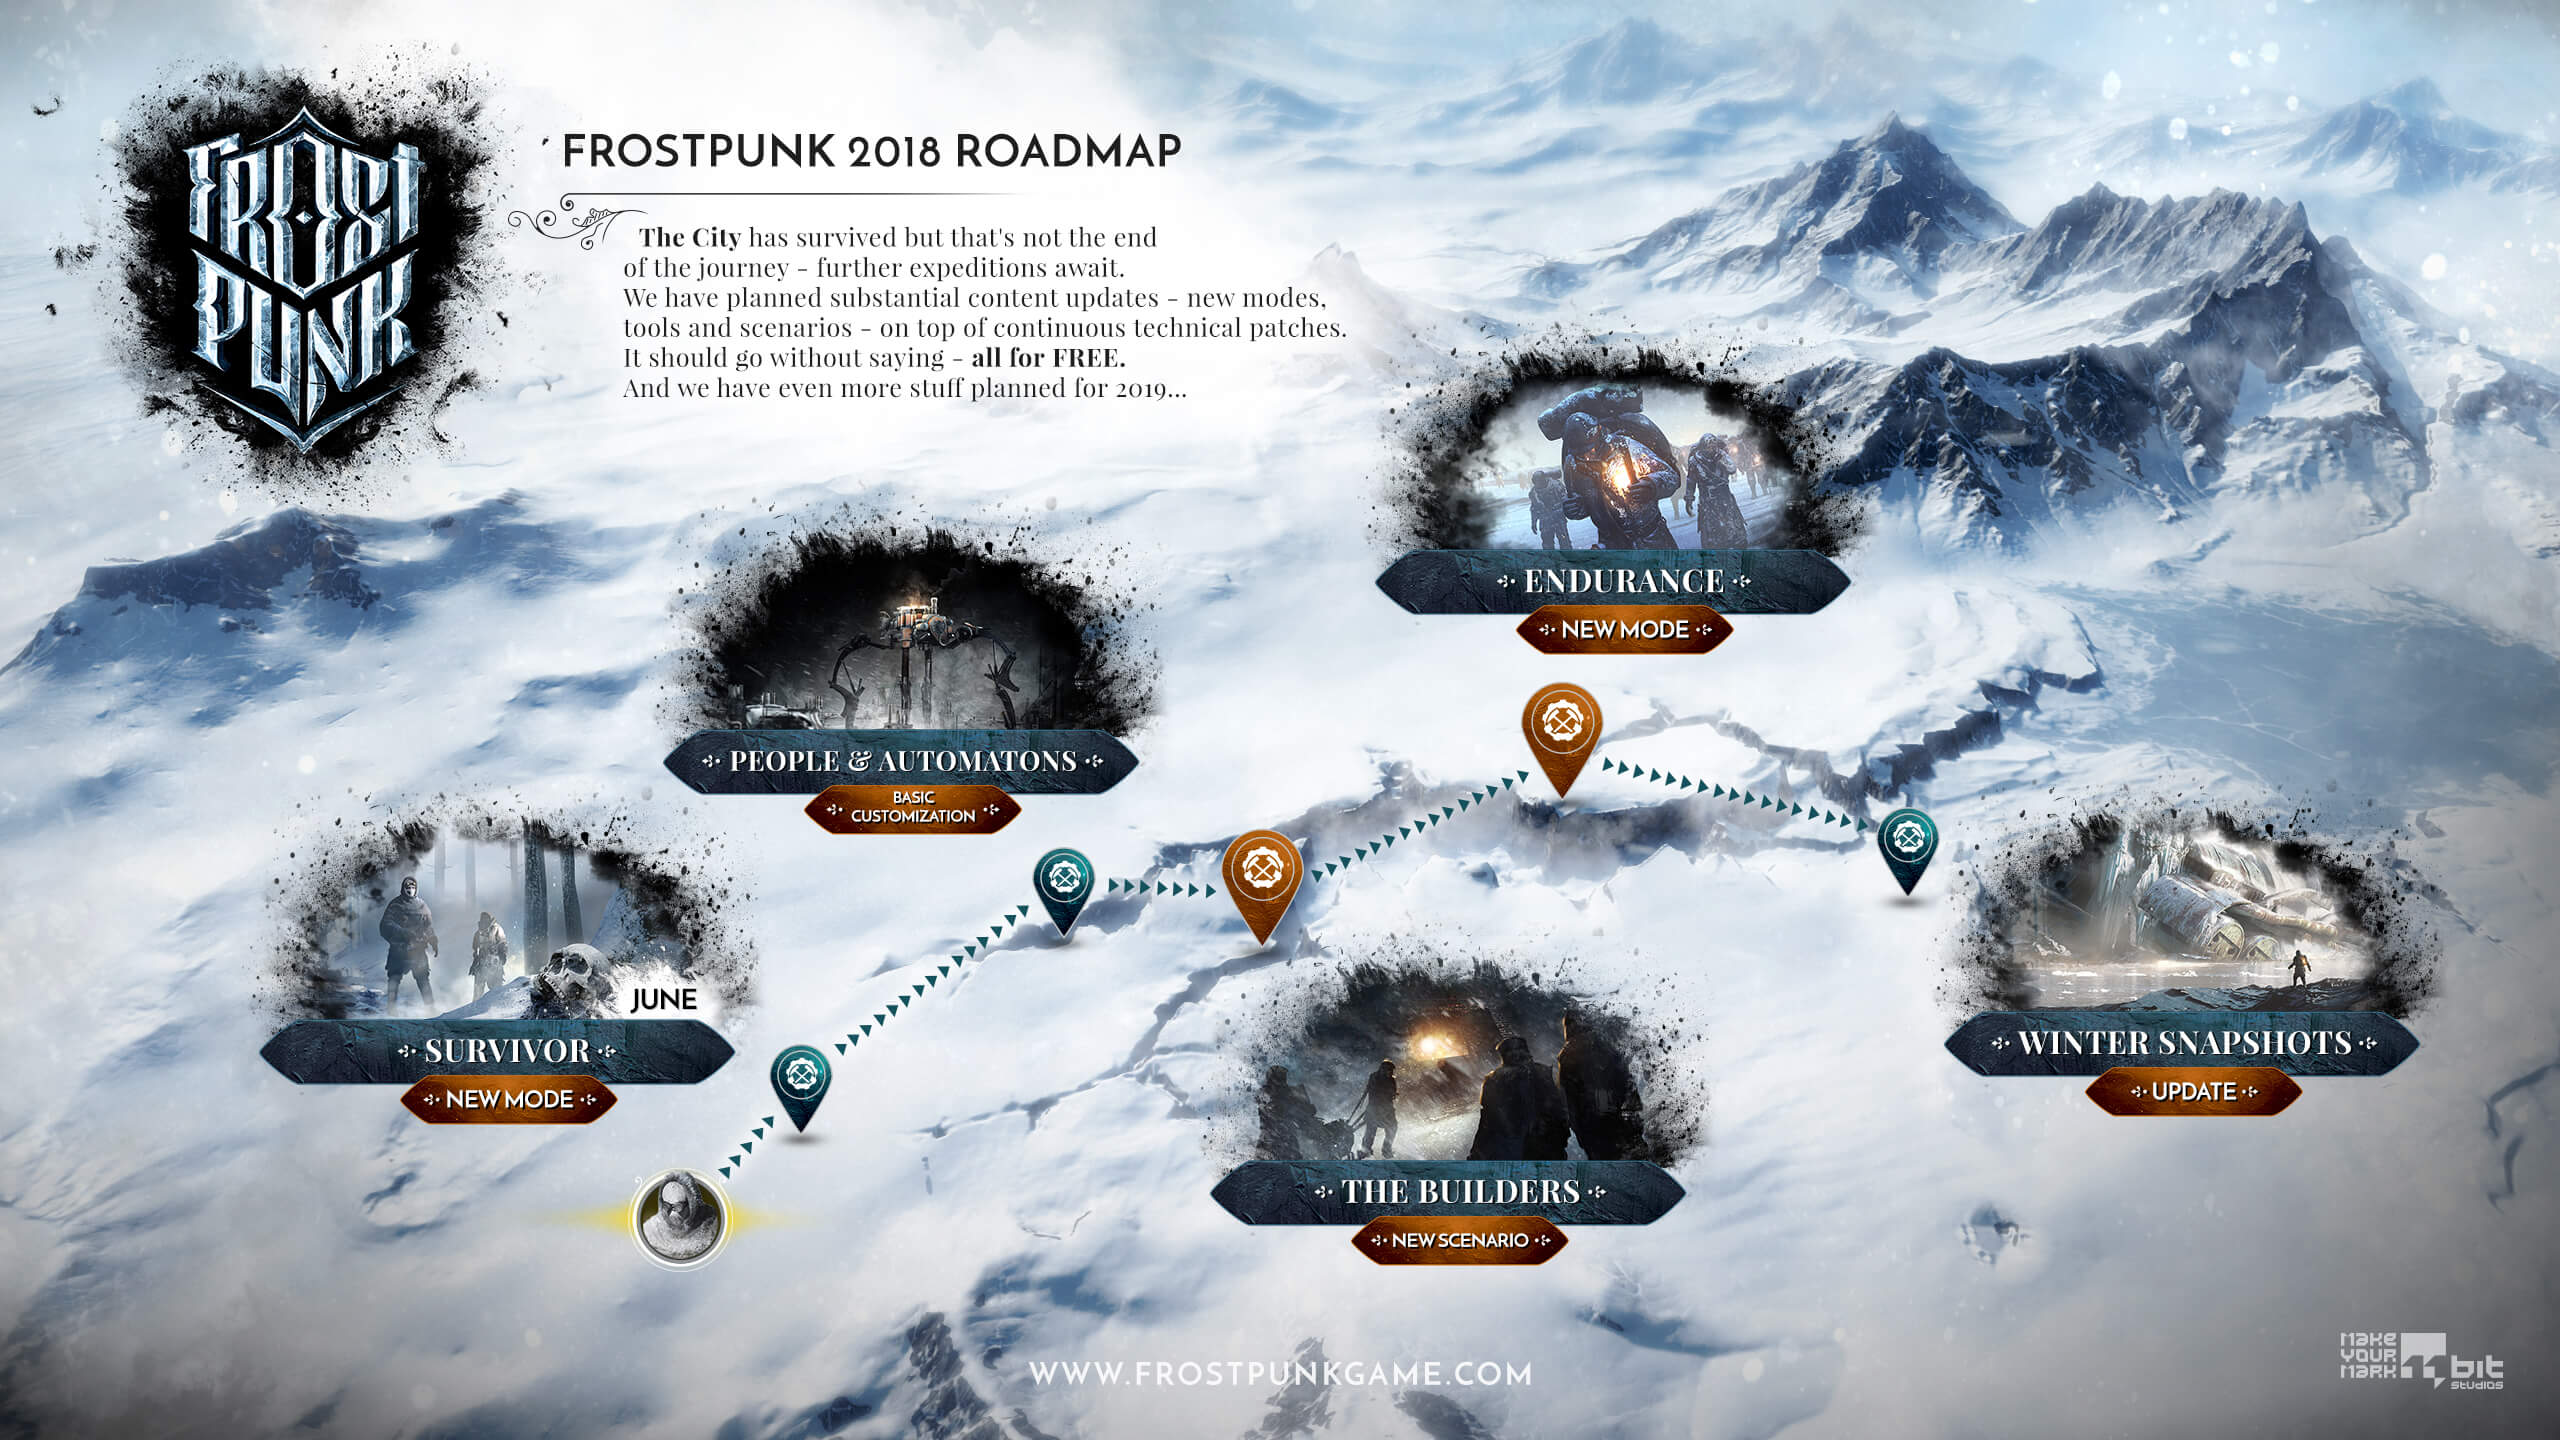 Frostpunk development roadmap